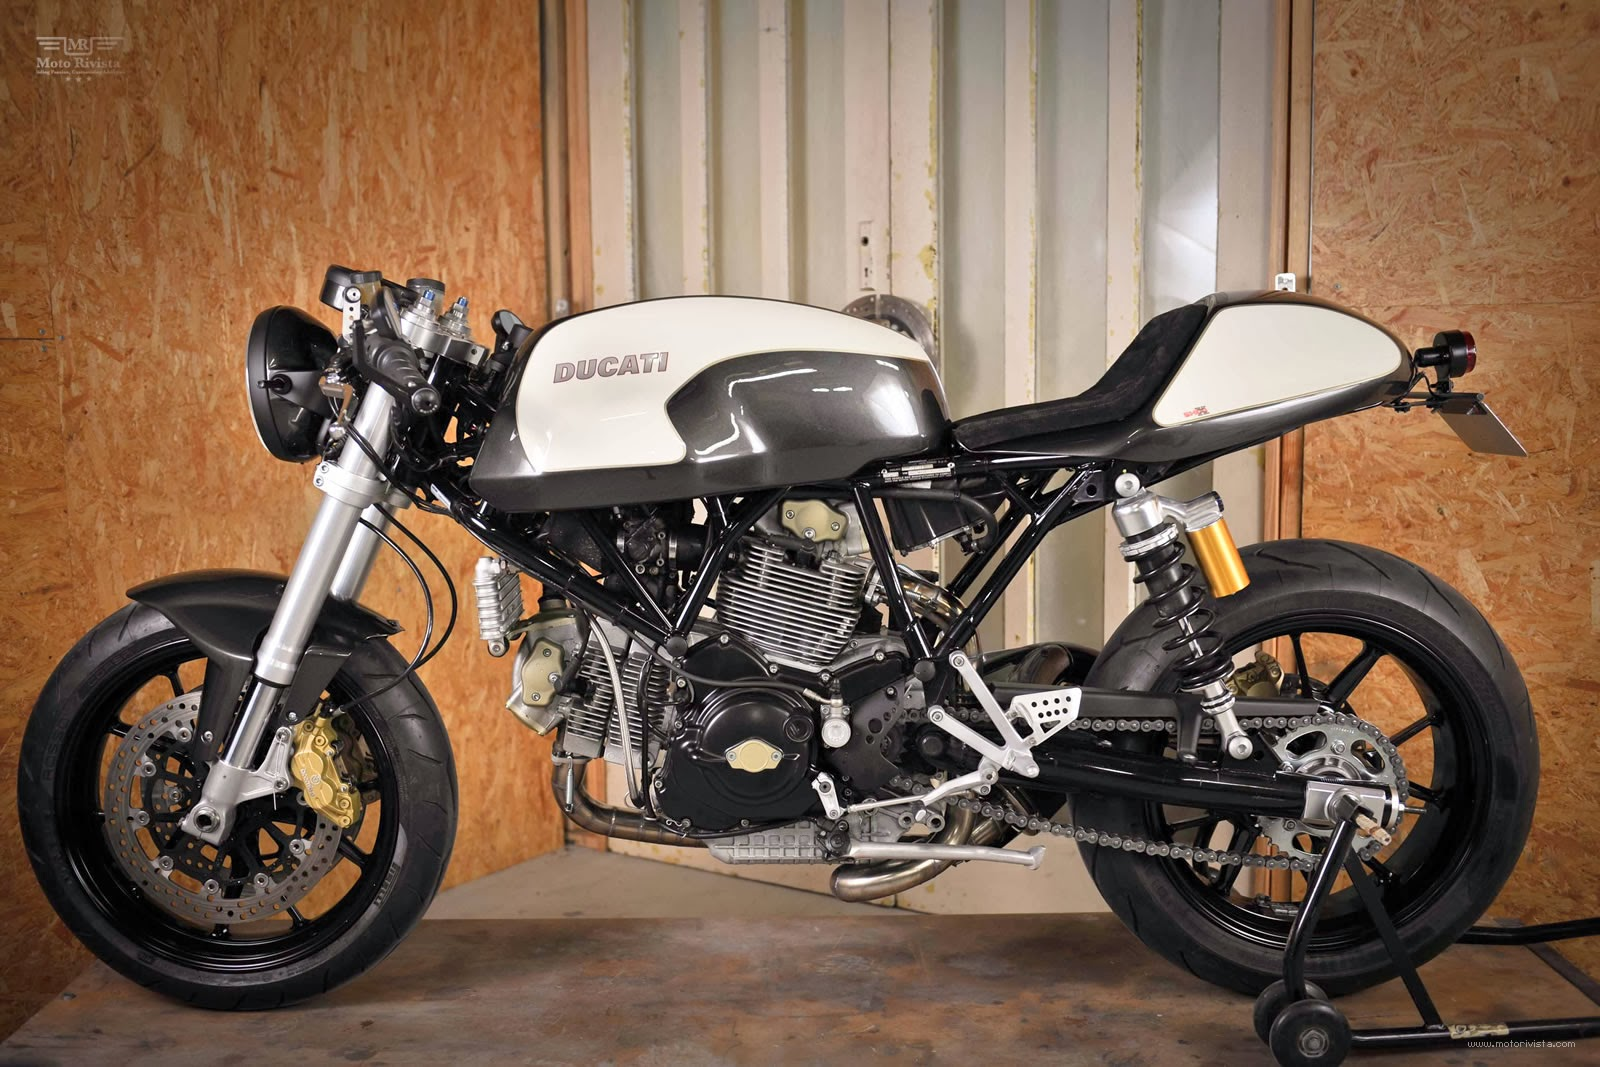 find perfect ride classiccarsforsale book engine chassis sportclassic s u ducati omaha ducati oem parts ordering diagrams ex tax  [ 1600 x 1067 Pixel ]